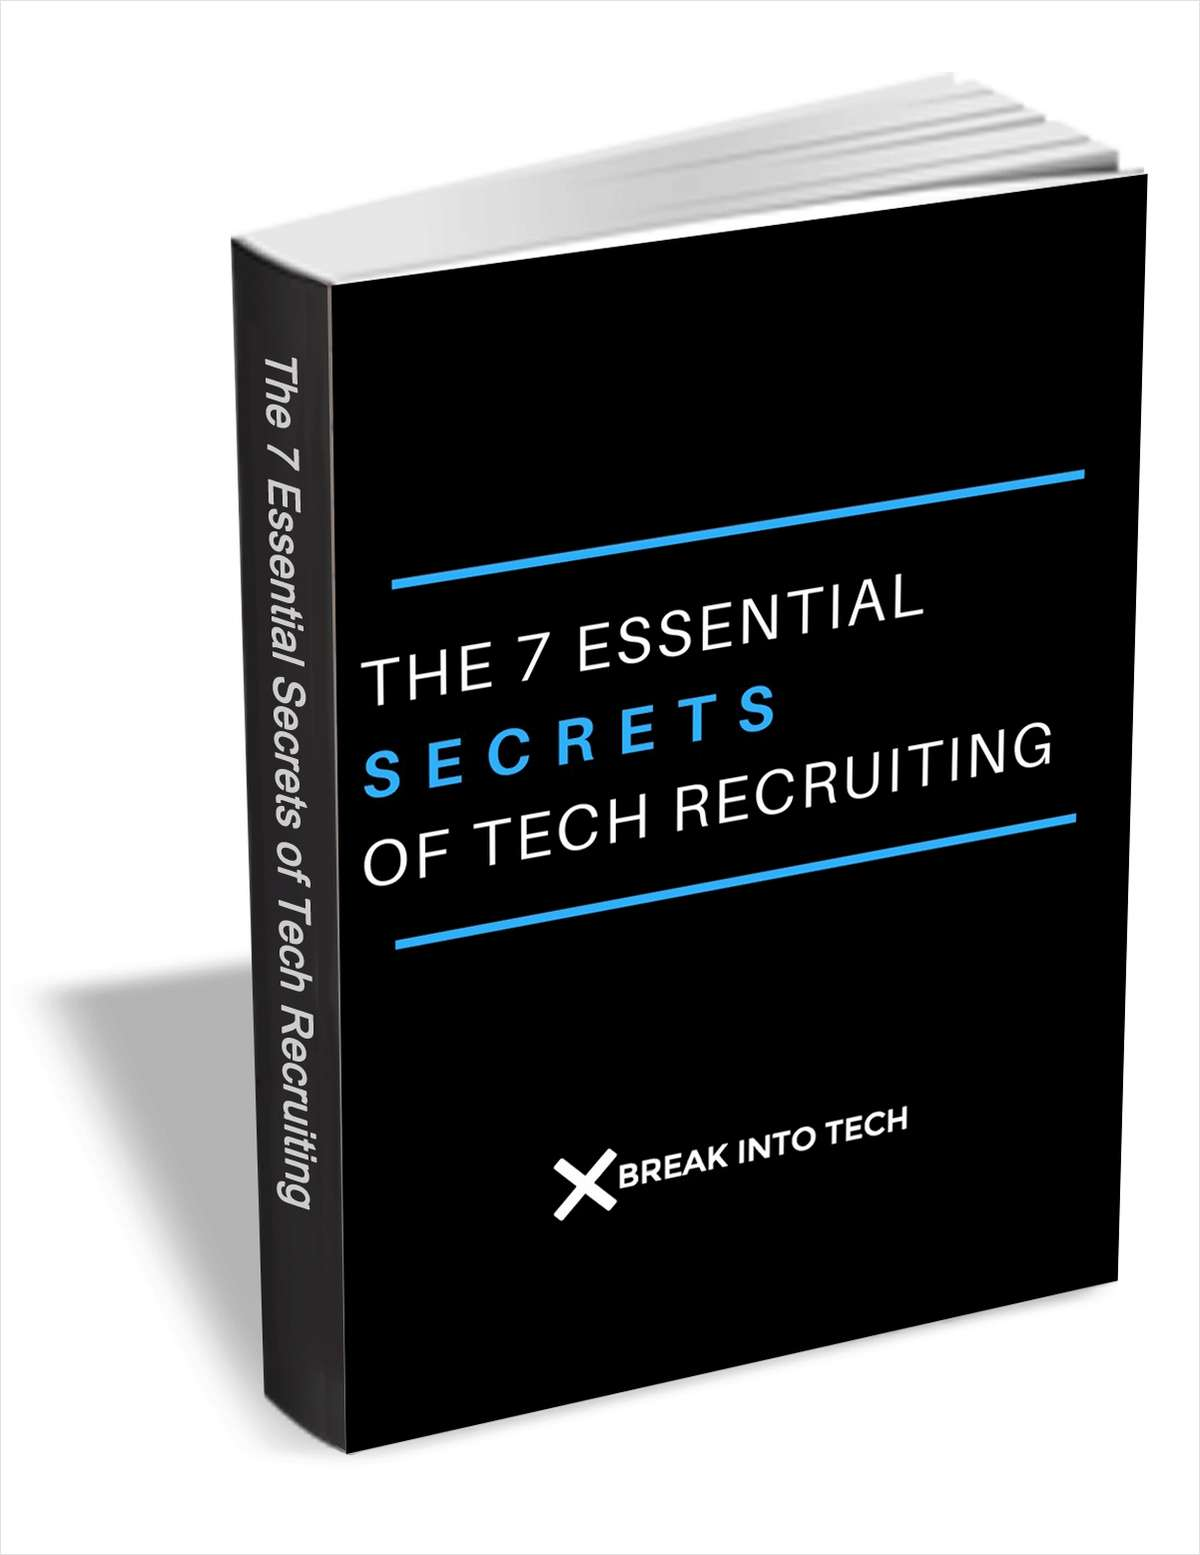 The 7 Essential Secrets of Tech Recruiting Screenshot